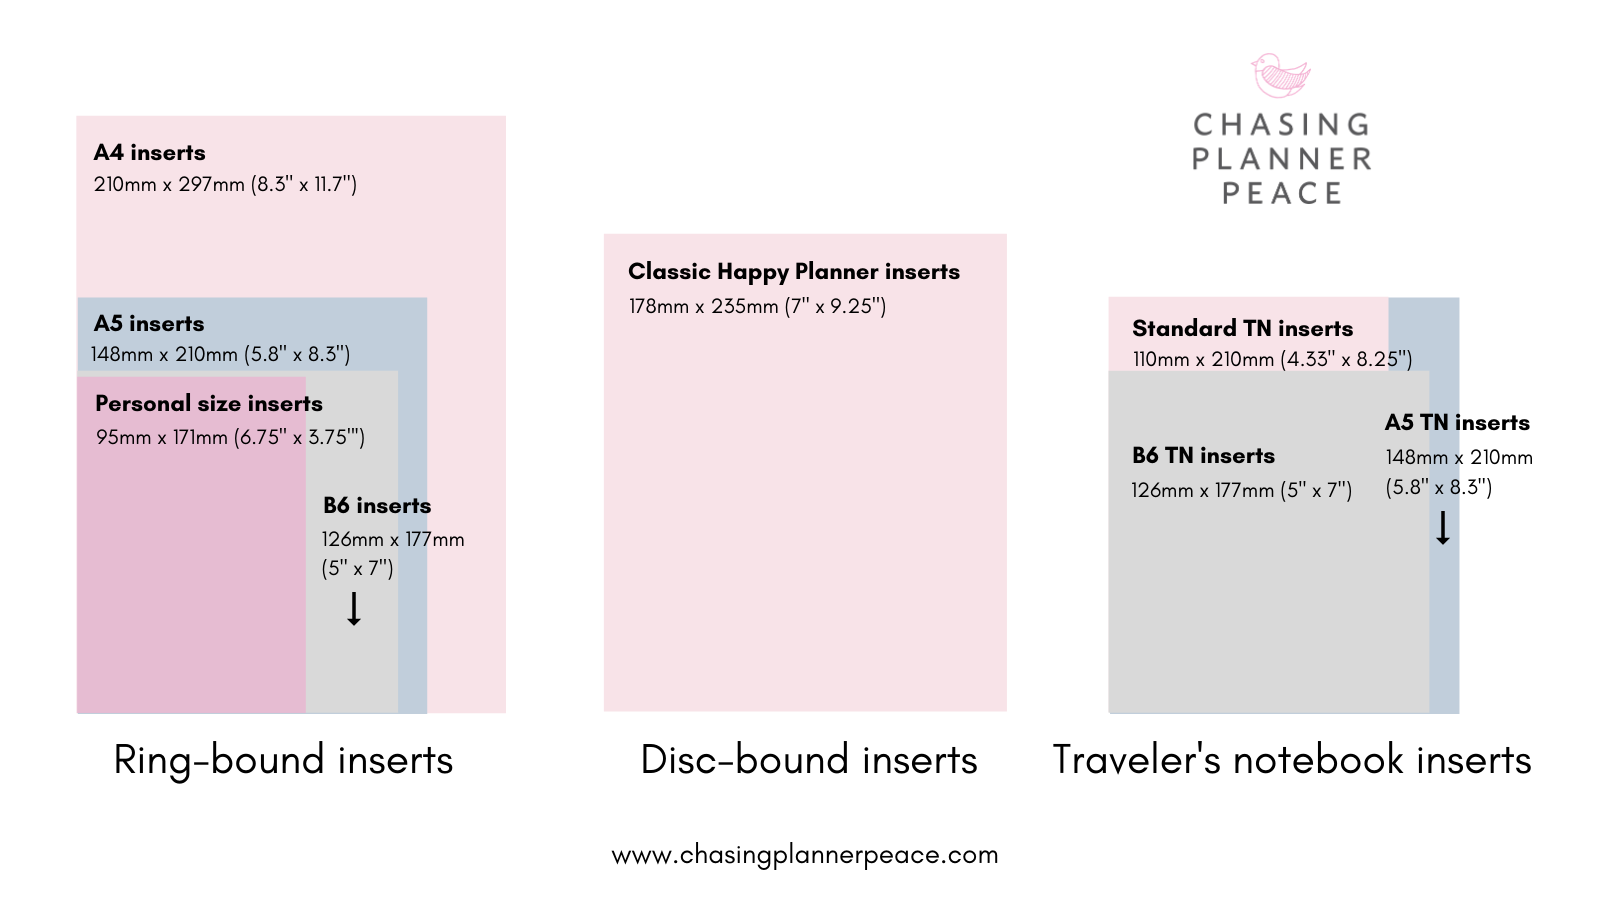 Chasing Planner Peace insert size chart